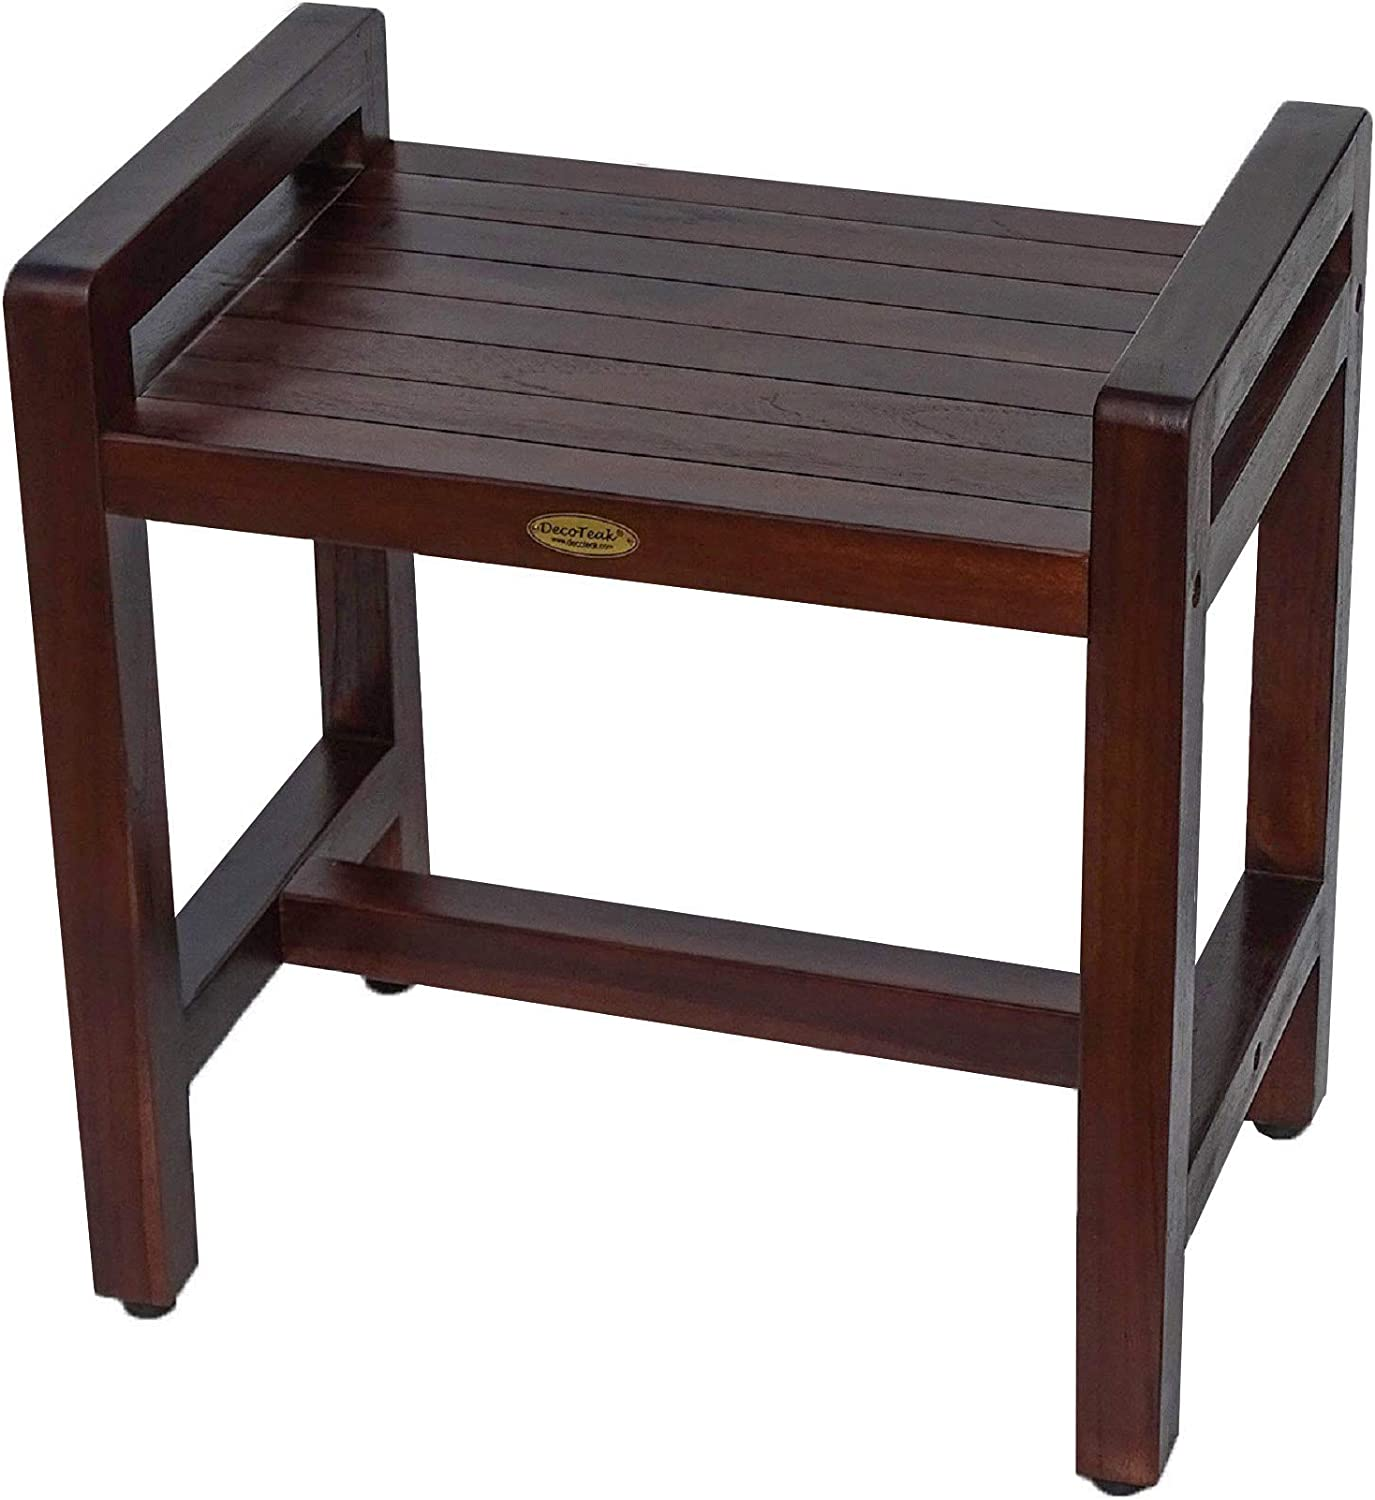 "B009I8INU4 Classic 18"" Teak Shower Bench with LIFTAIDE ARMS- Adustable Height Foot Pads- Home Health Medical Bench Features-Sitting, Shaving, Display, Storage 71xd8PVr7DL.SL1500_"